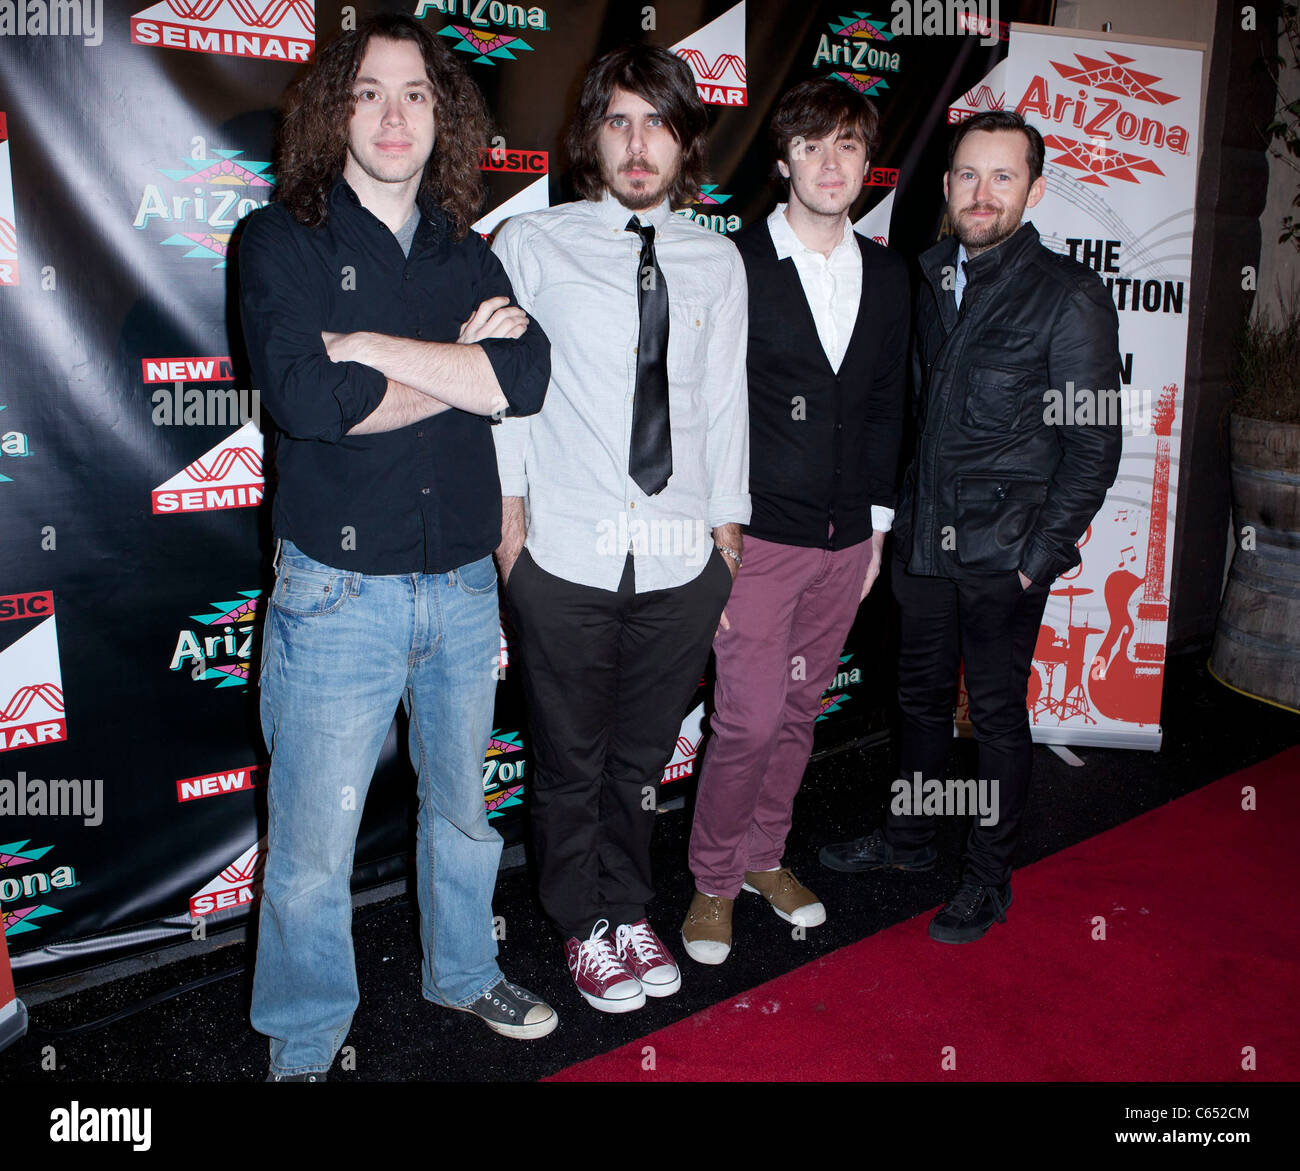 The Well Reds at arrivals for After Grammy Jammy Opening Night Party for the New Music Seminar Future of Music Conference, - Stock Image